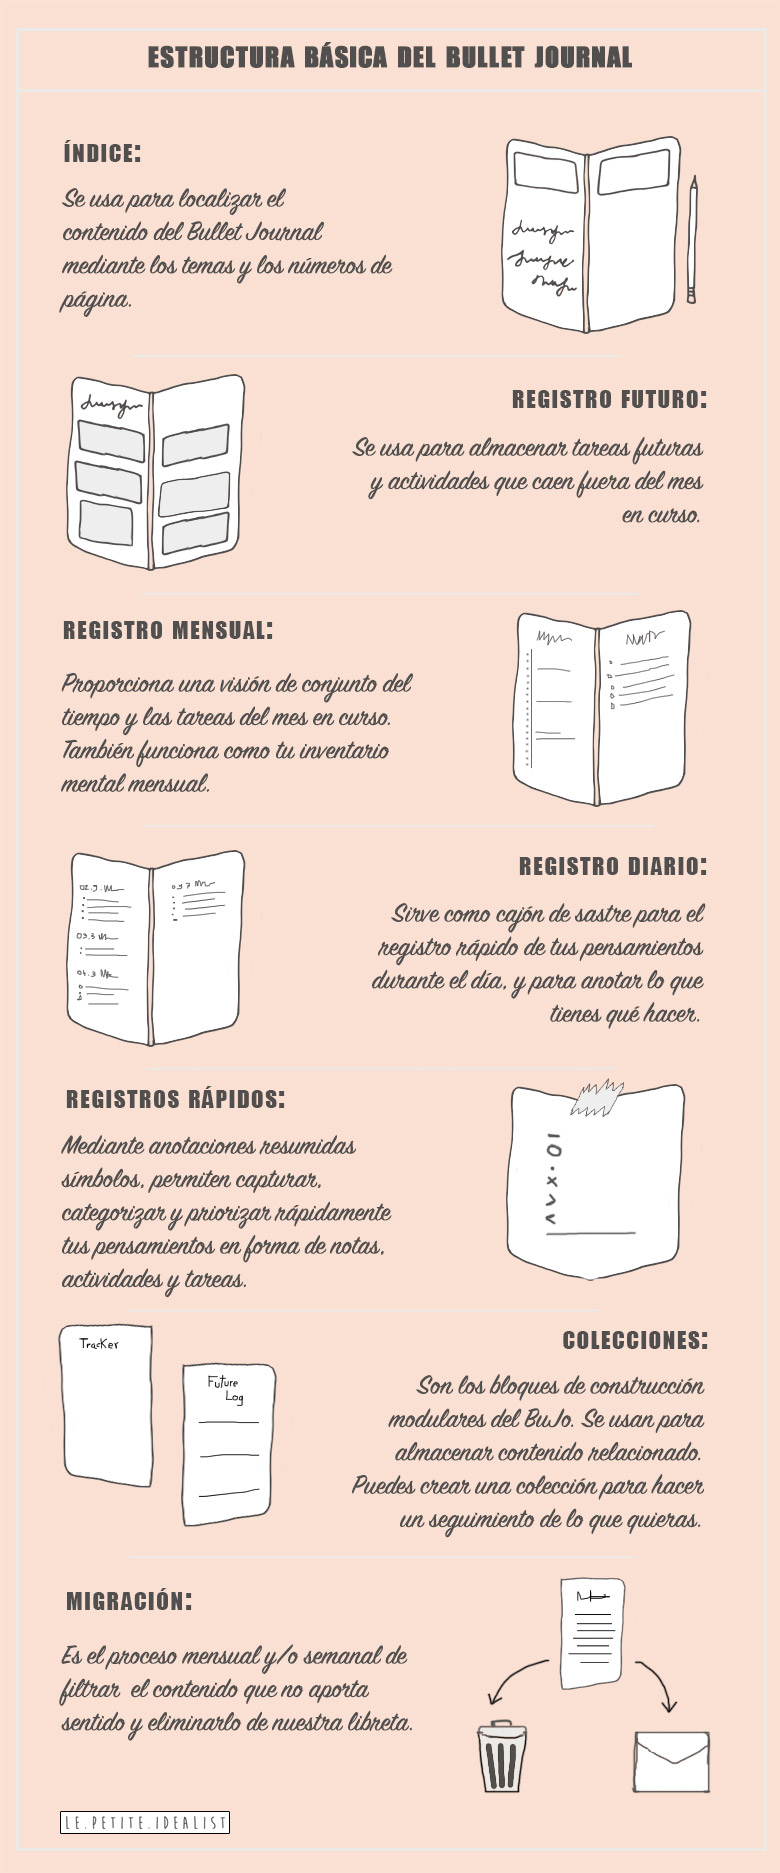 bullet journal, partes básicas del bullet journal, bujo,